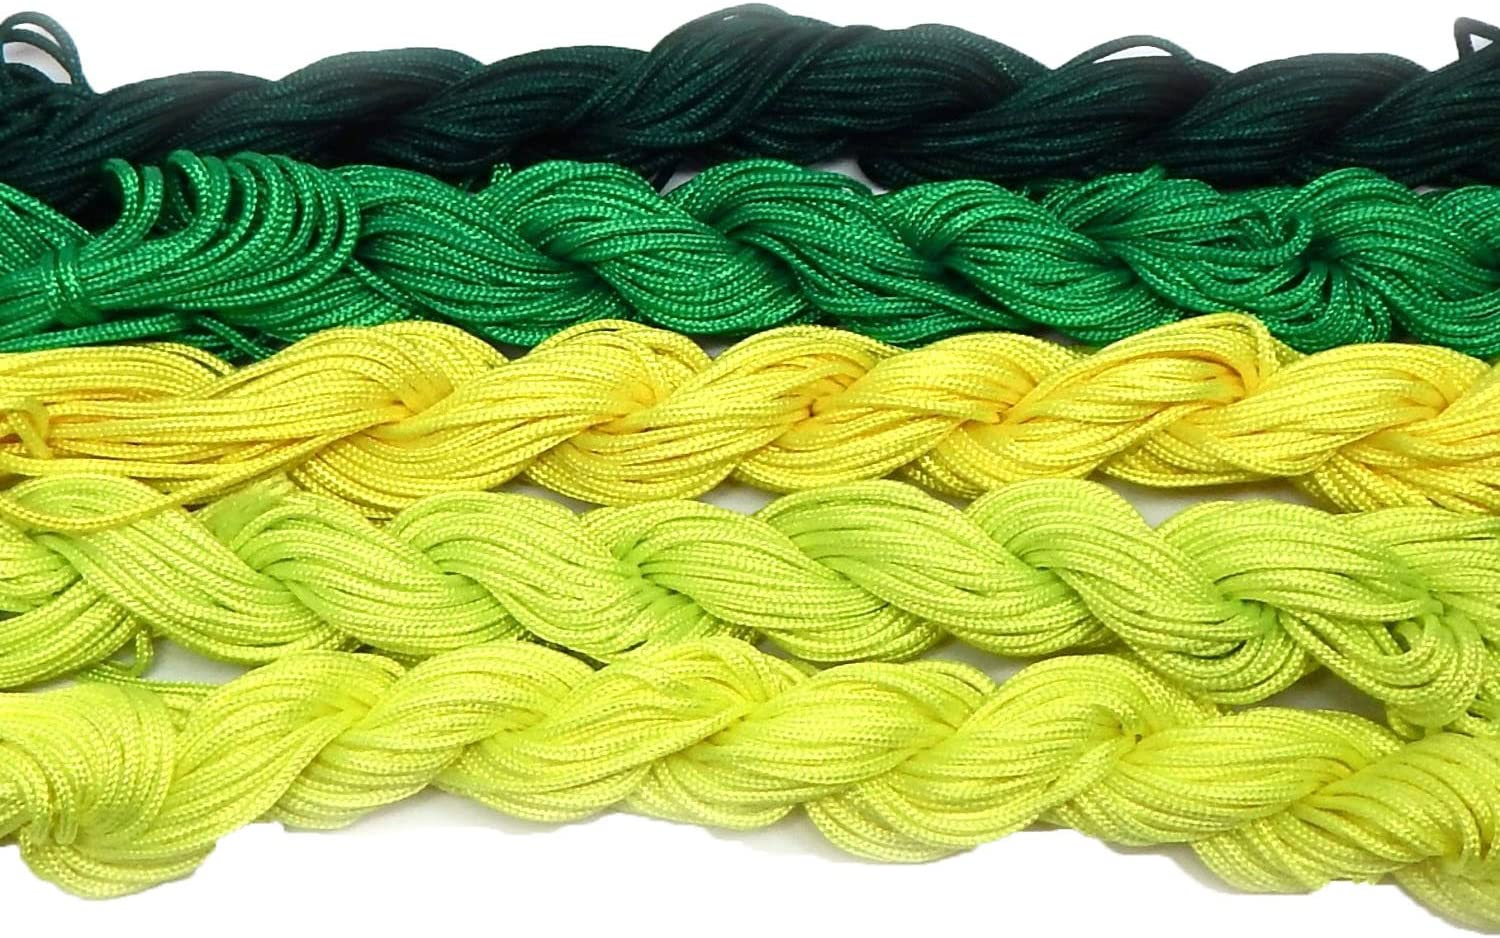 Chinese Knotting Beading Cord Mixed Approx Year-end gift Skei 5 12 1.5mm Max 85% OFF Yard